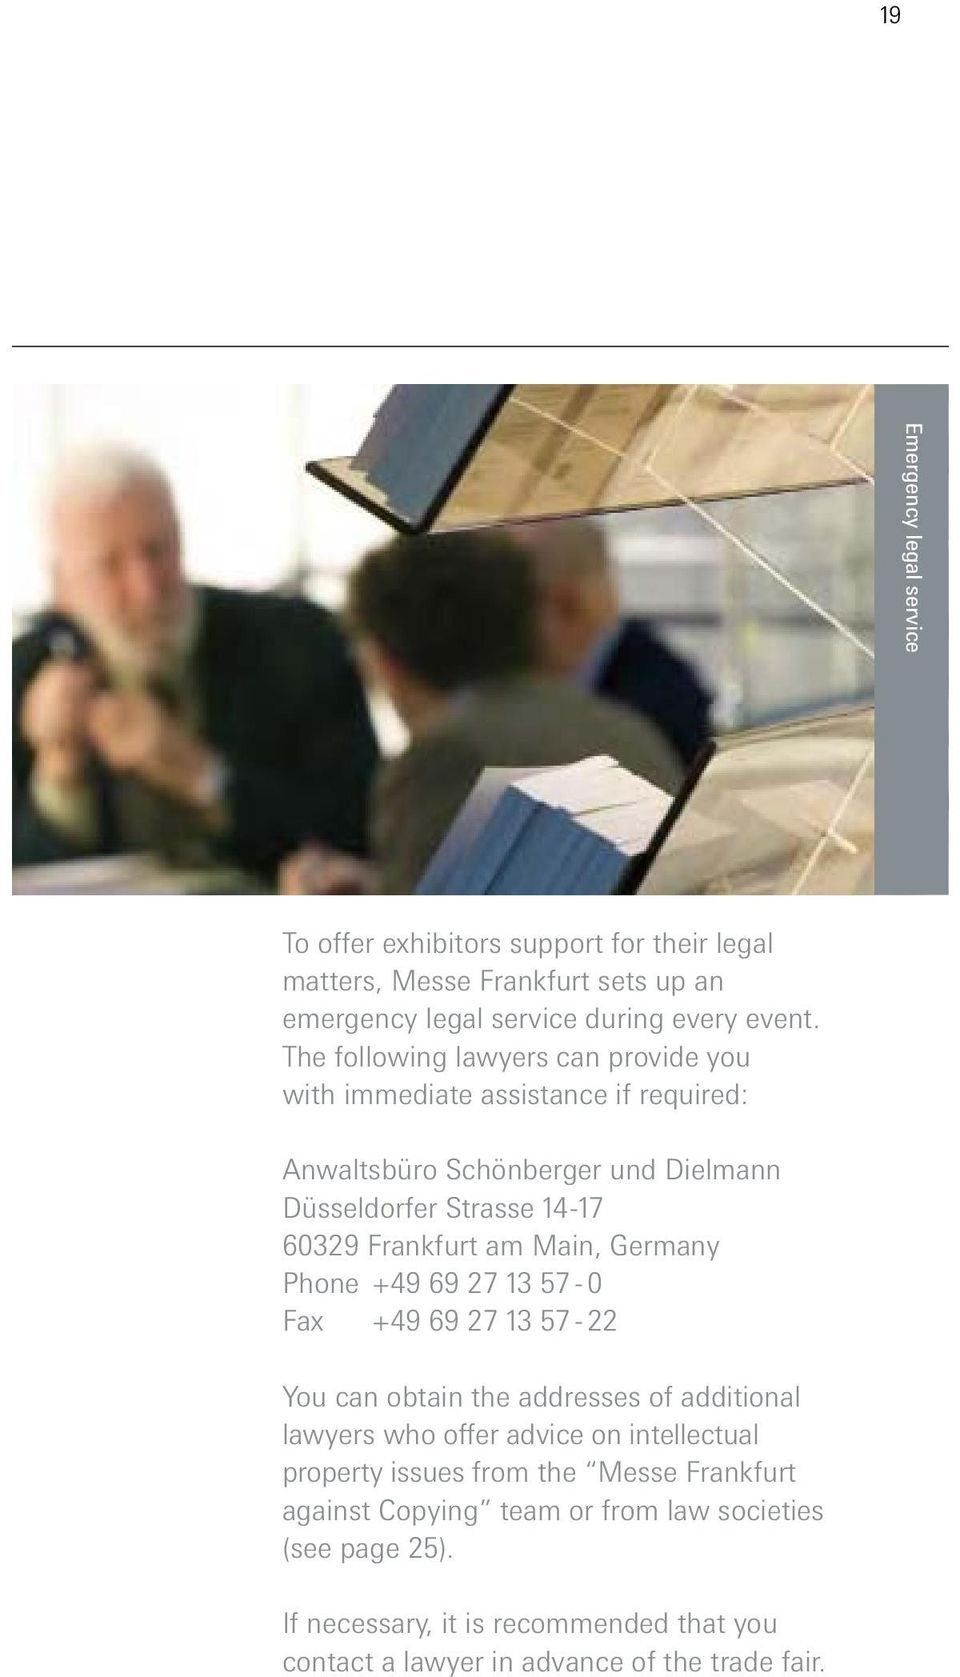 Main, Germany Phone +49 69 27 13 57-0 Fax +49 69 27 13 57-22 You can obtain the addresses of additional lawyers who offer advice on intellectual property issues